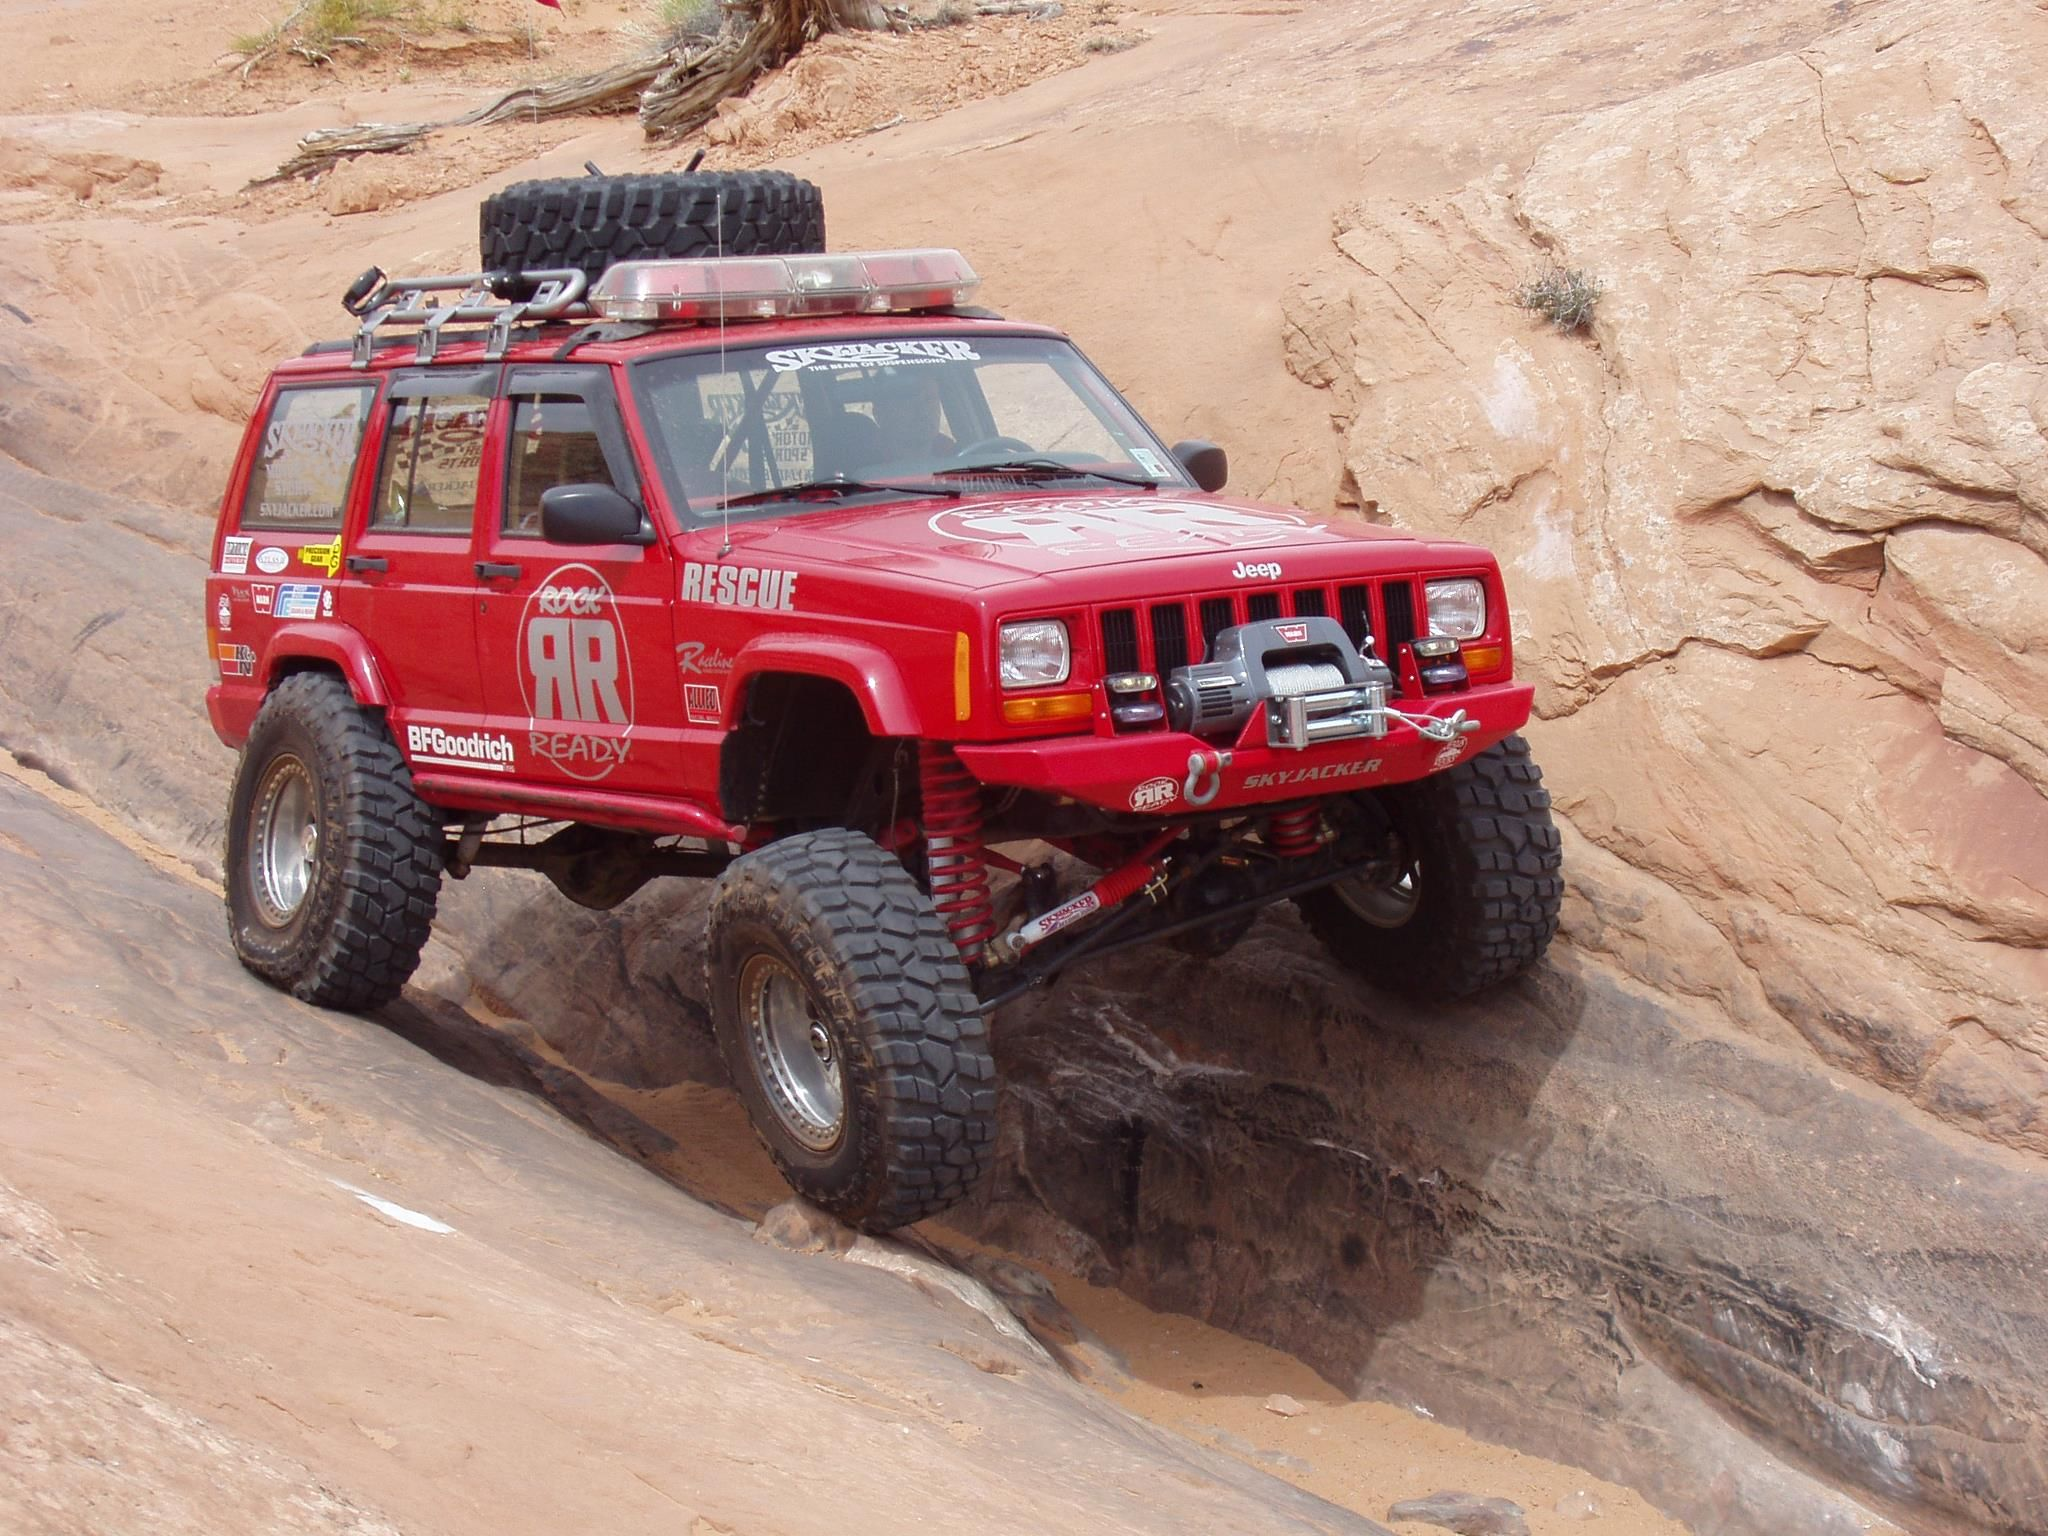 Throwback Thursday Shot Of Our Rescue Cherokee Out In Moab Ut From 10 Years Ago Still Have It And It S Going Strong V Jeep Cherokee Xj Jeep Xj Jeep Cherokee